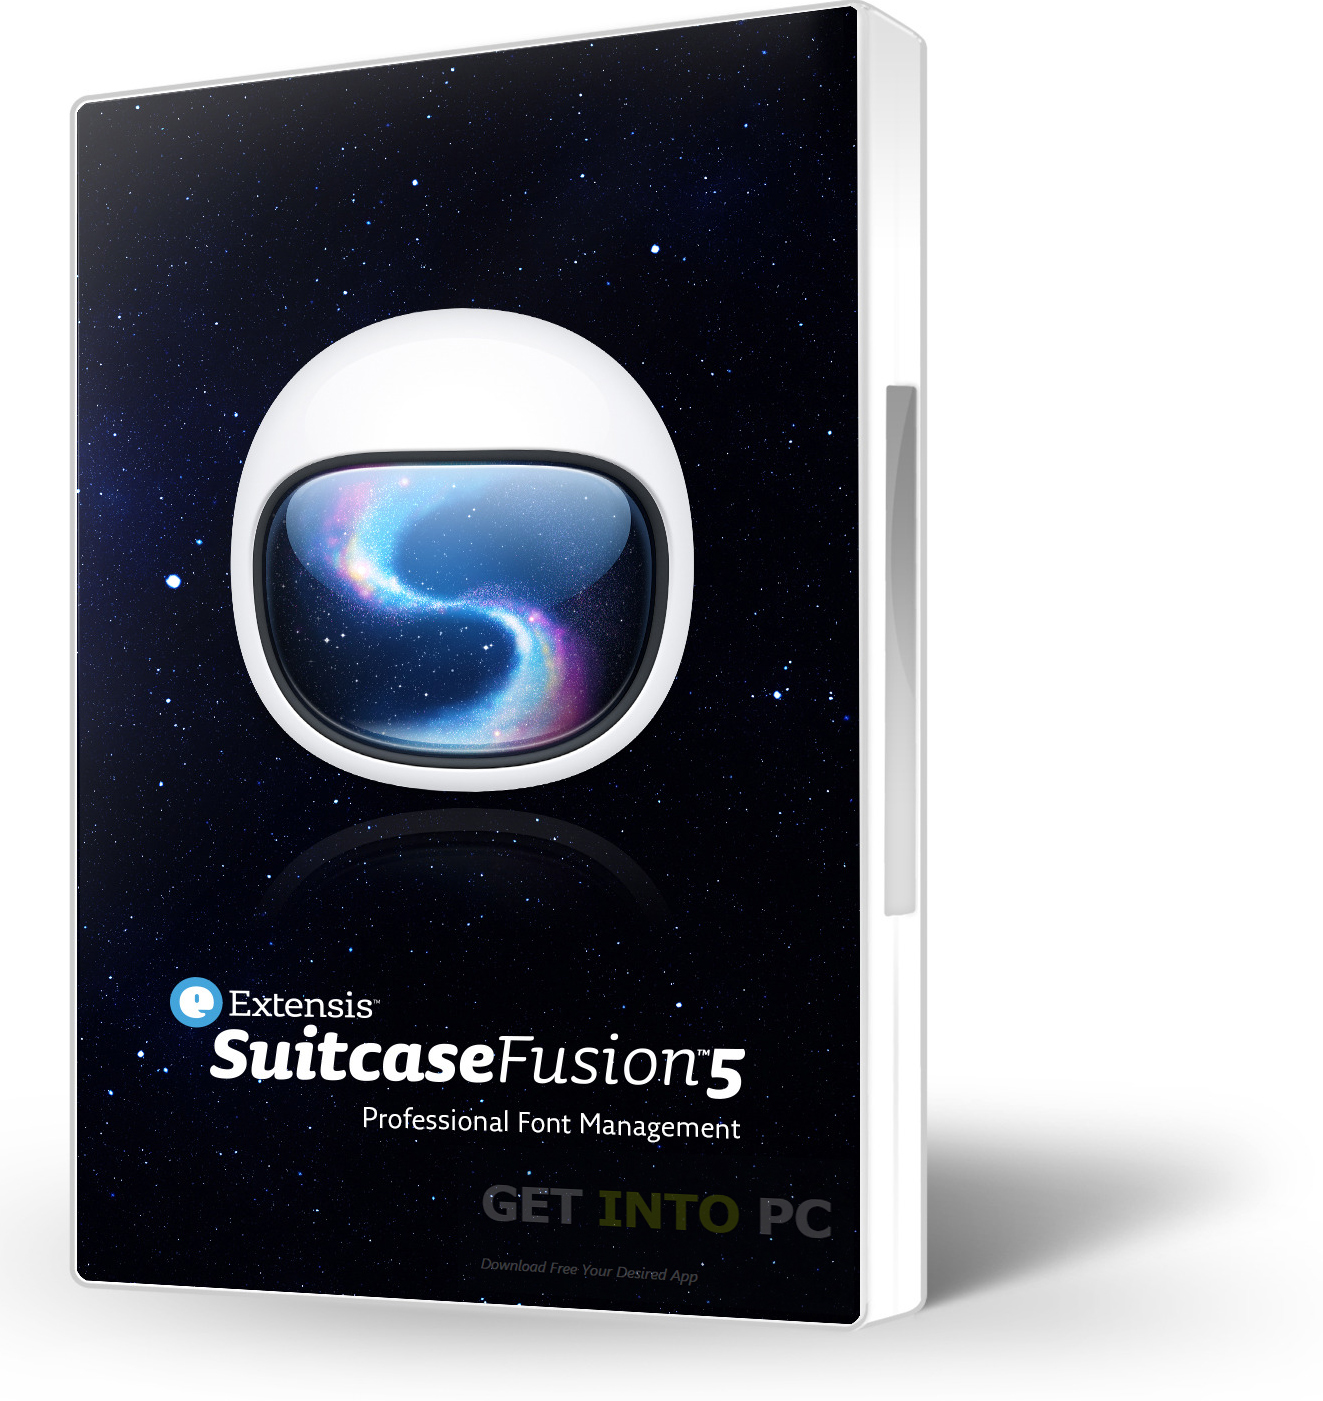 Extensis Suitcase Fusion 5 Free Download